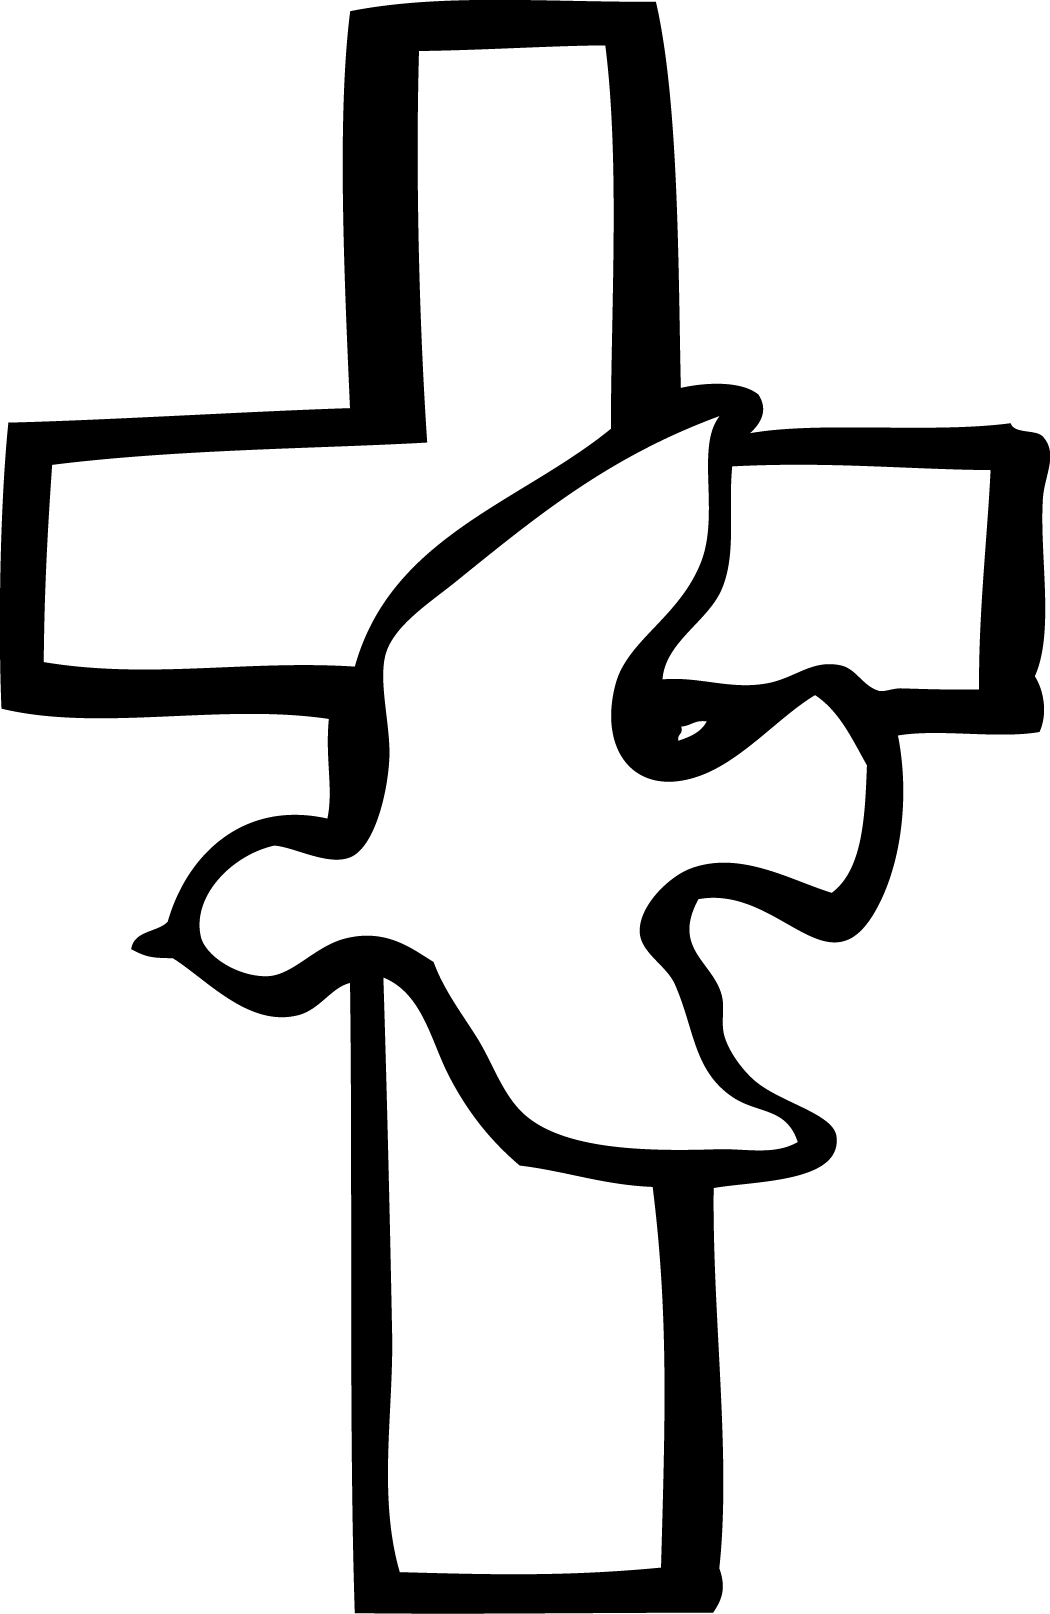 stations of the cross clip art the staff of aaron meditations on the scriptural stations stations art clip the cross of